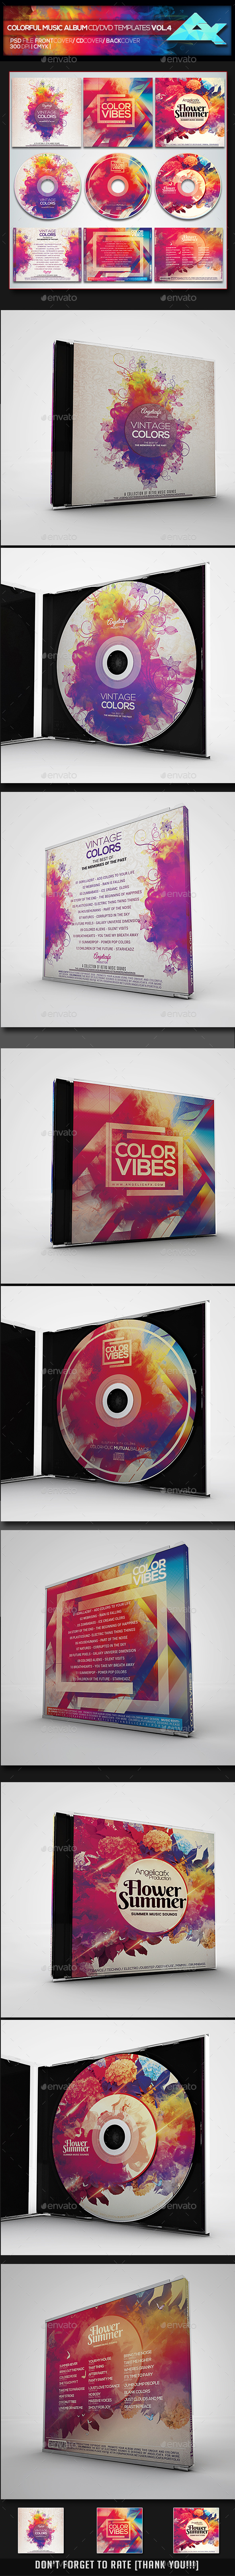 Colorful CD/DVD Album Covers Bundle Vol. 4 - CD & DVD Artwork Print Templates